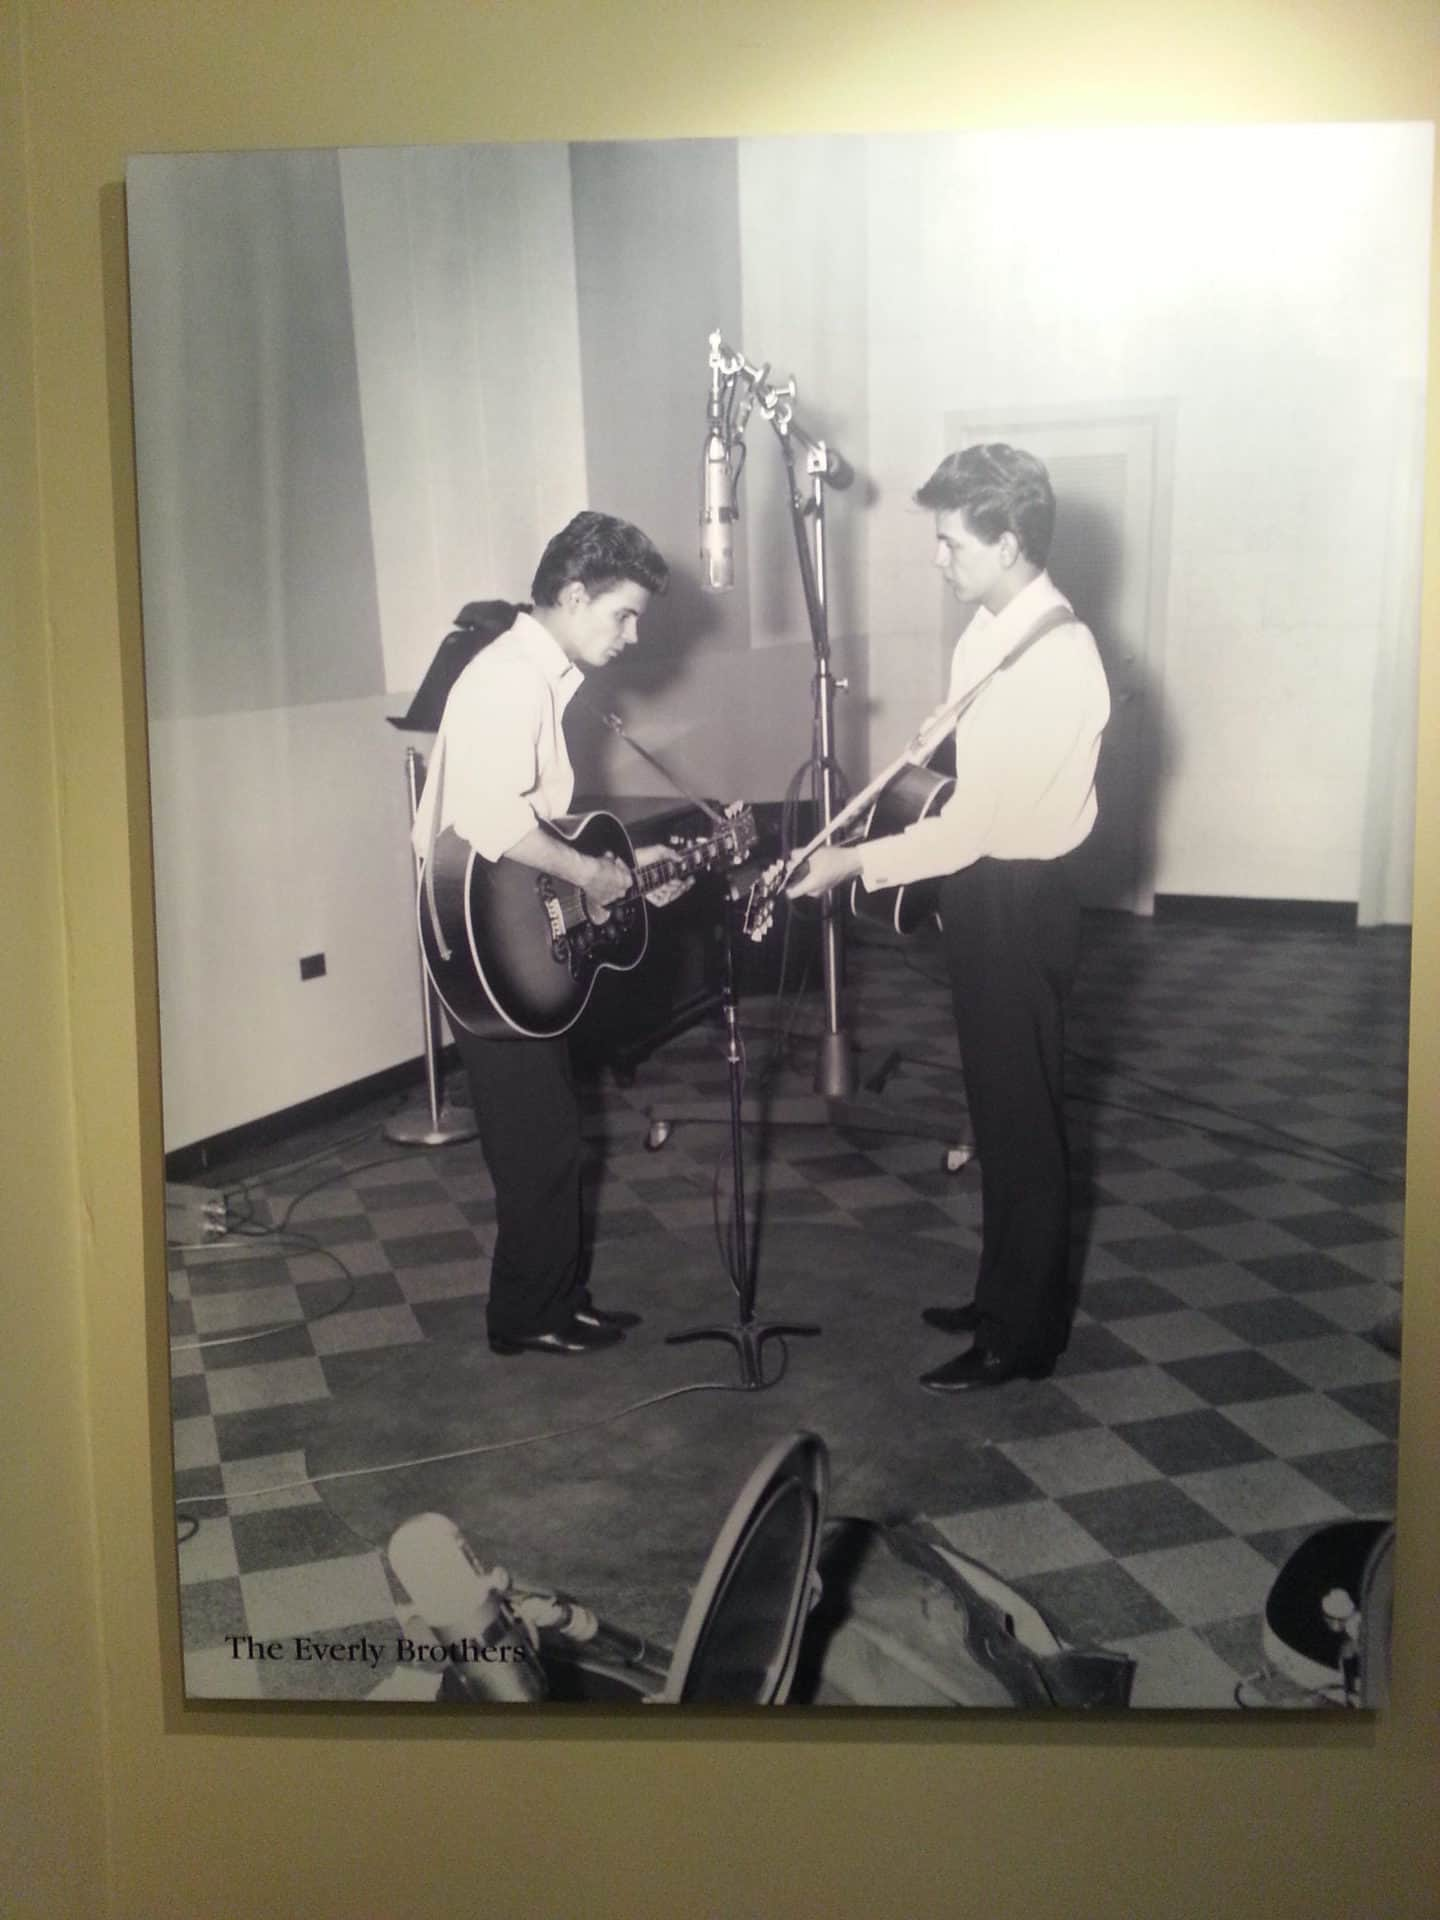 RCA Studio B Tour picture of artists recording in the studio on display